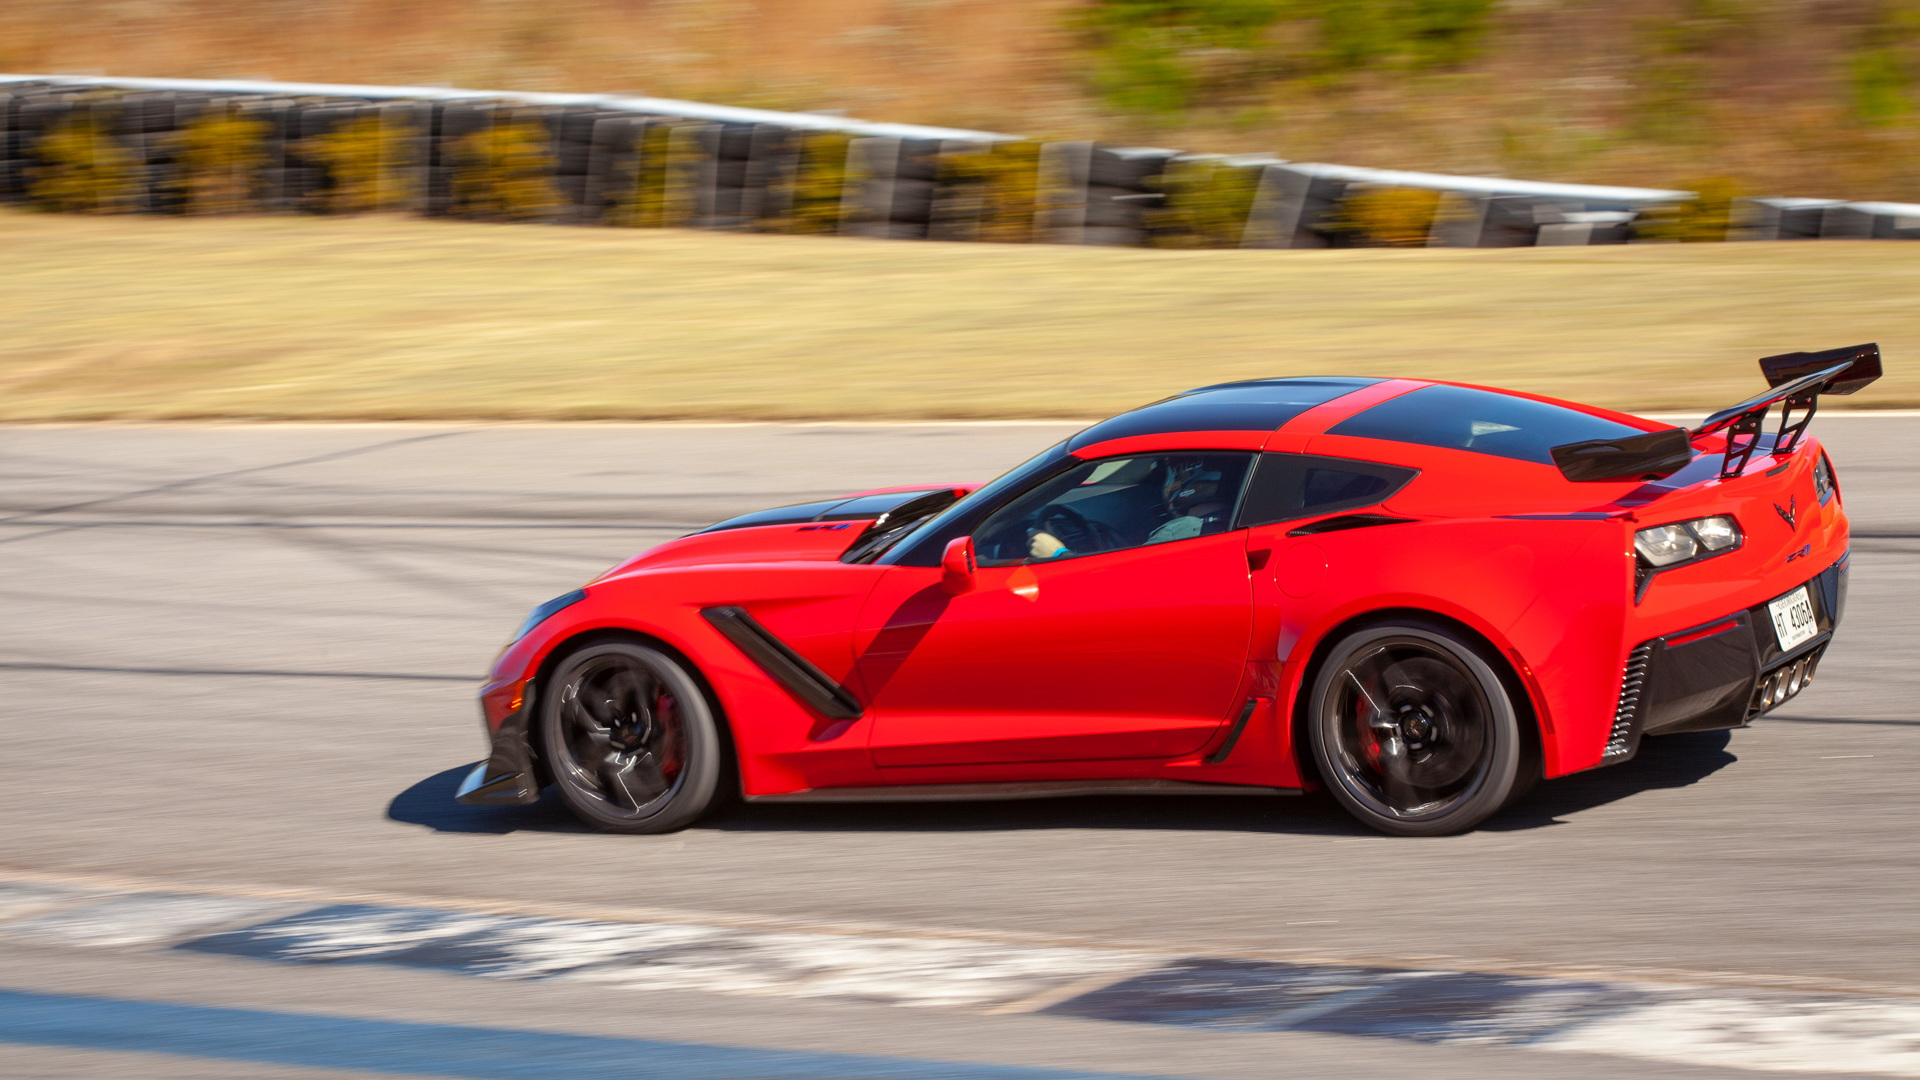 2019 Chevrolet Corvette preview